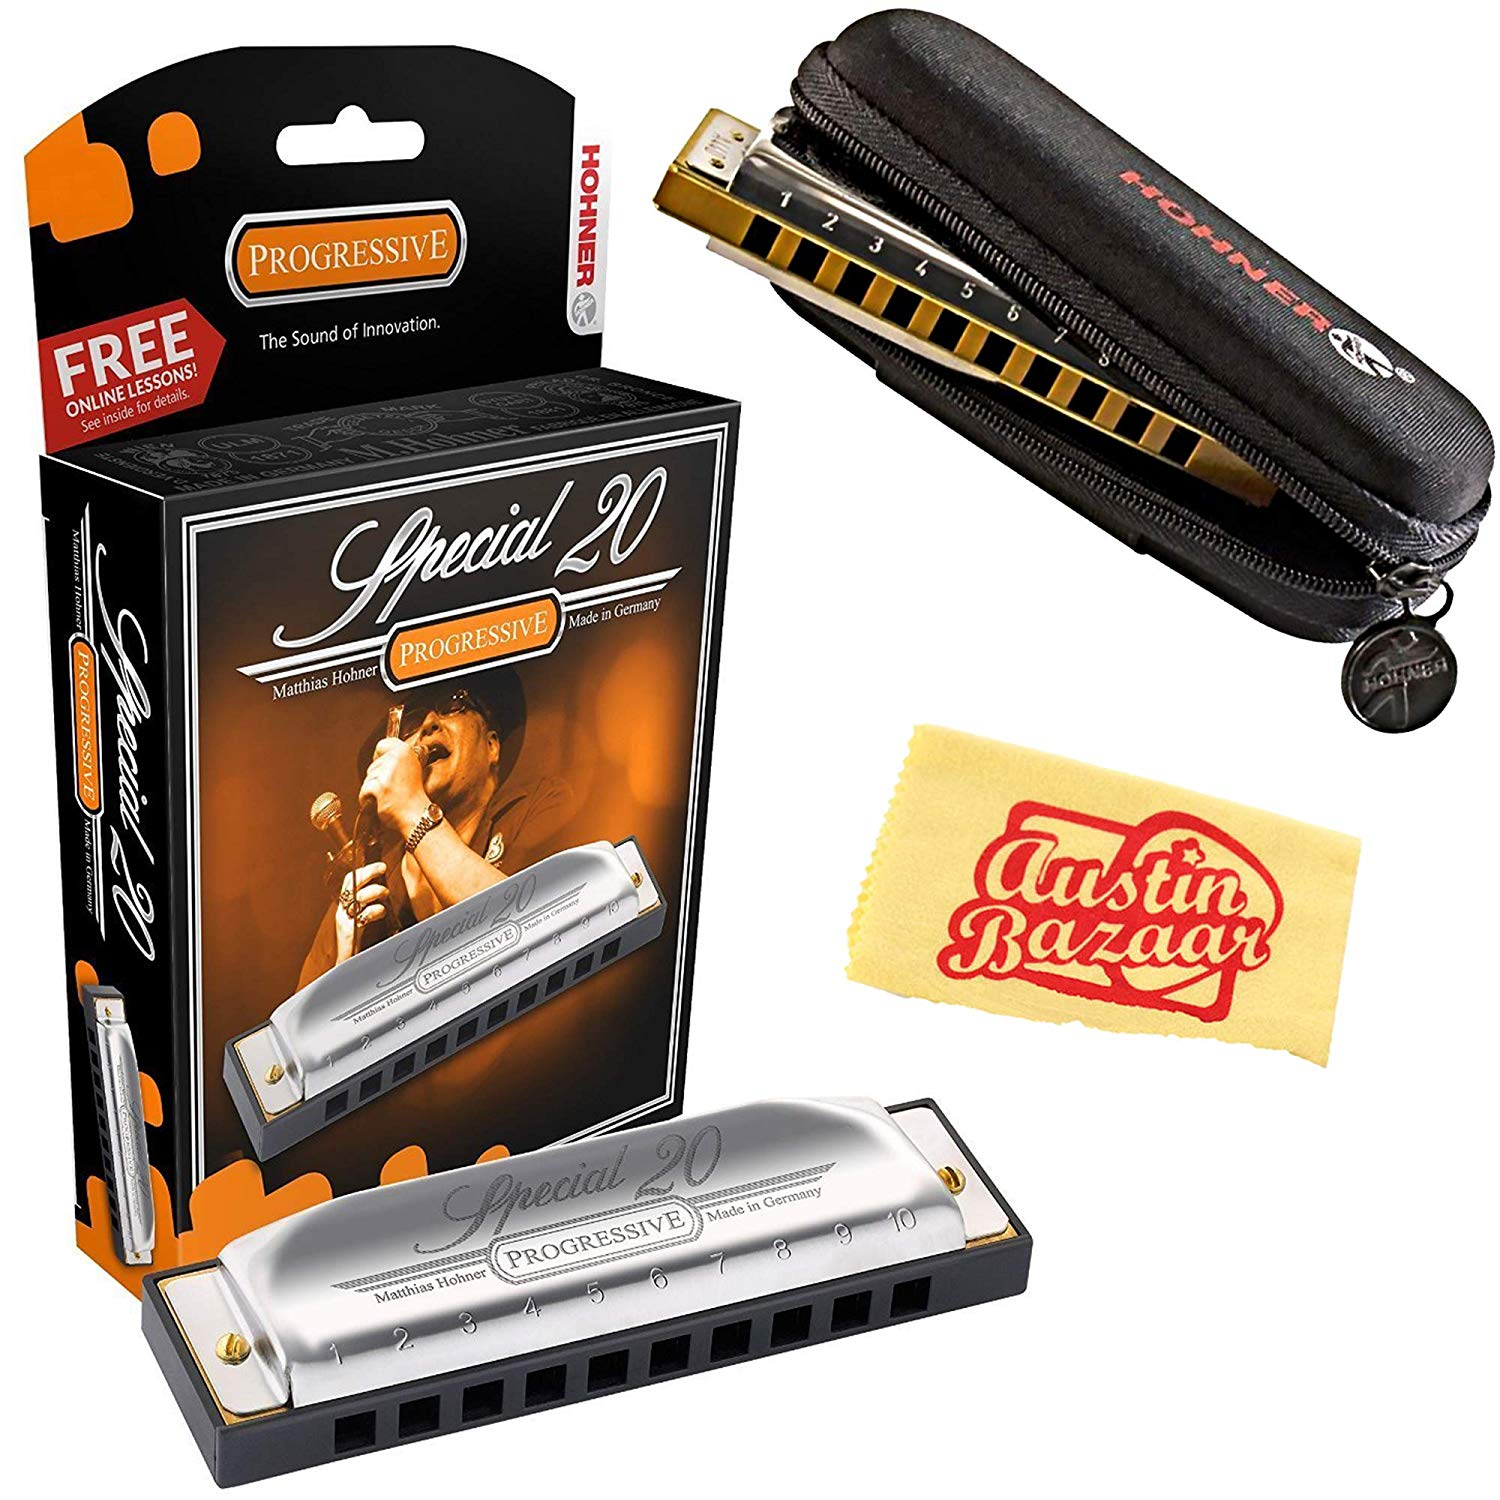 Hohner 560 Special 20 Harmonica Reviews